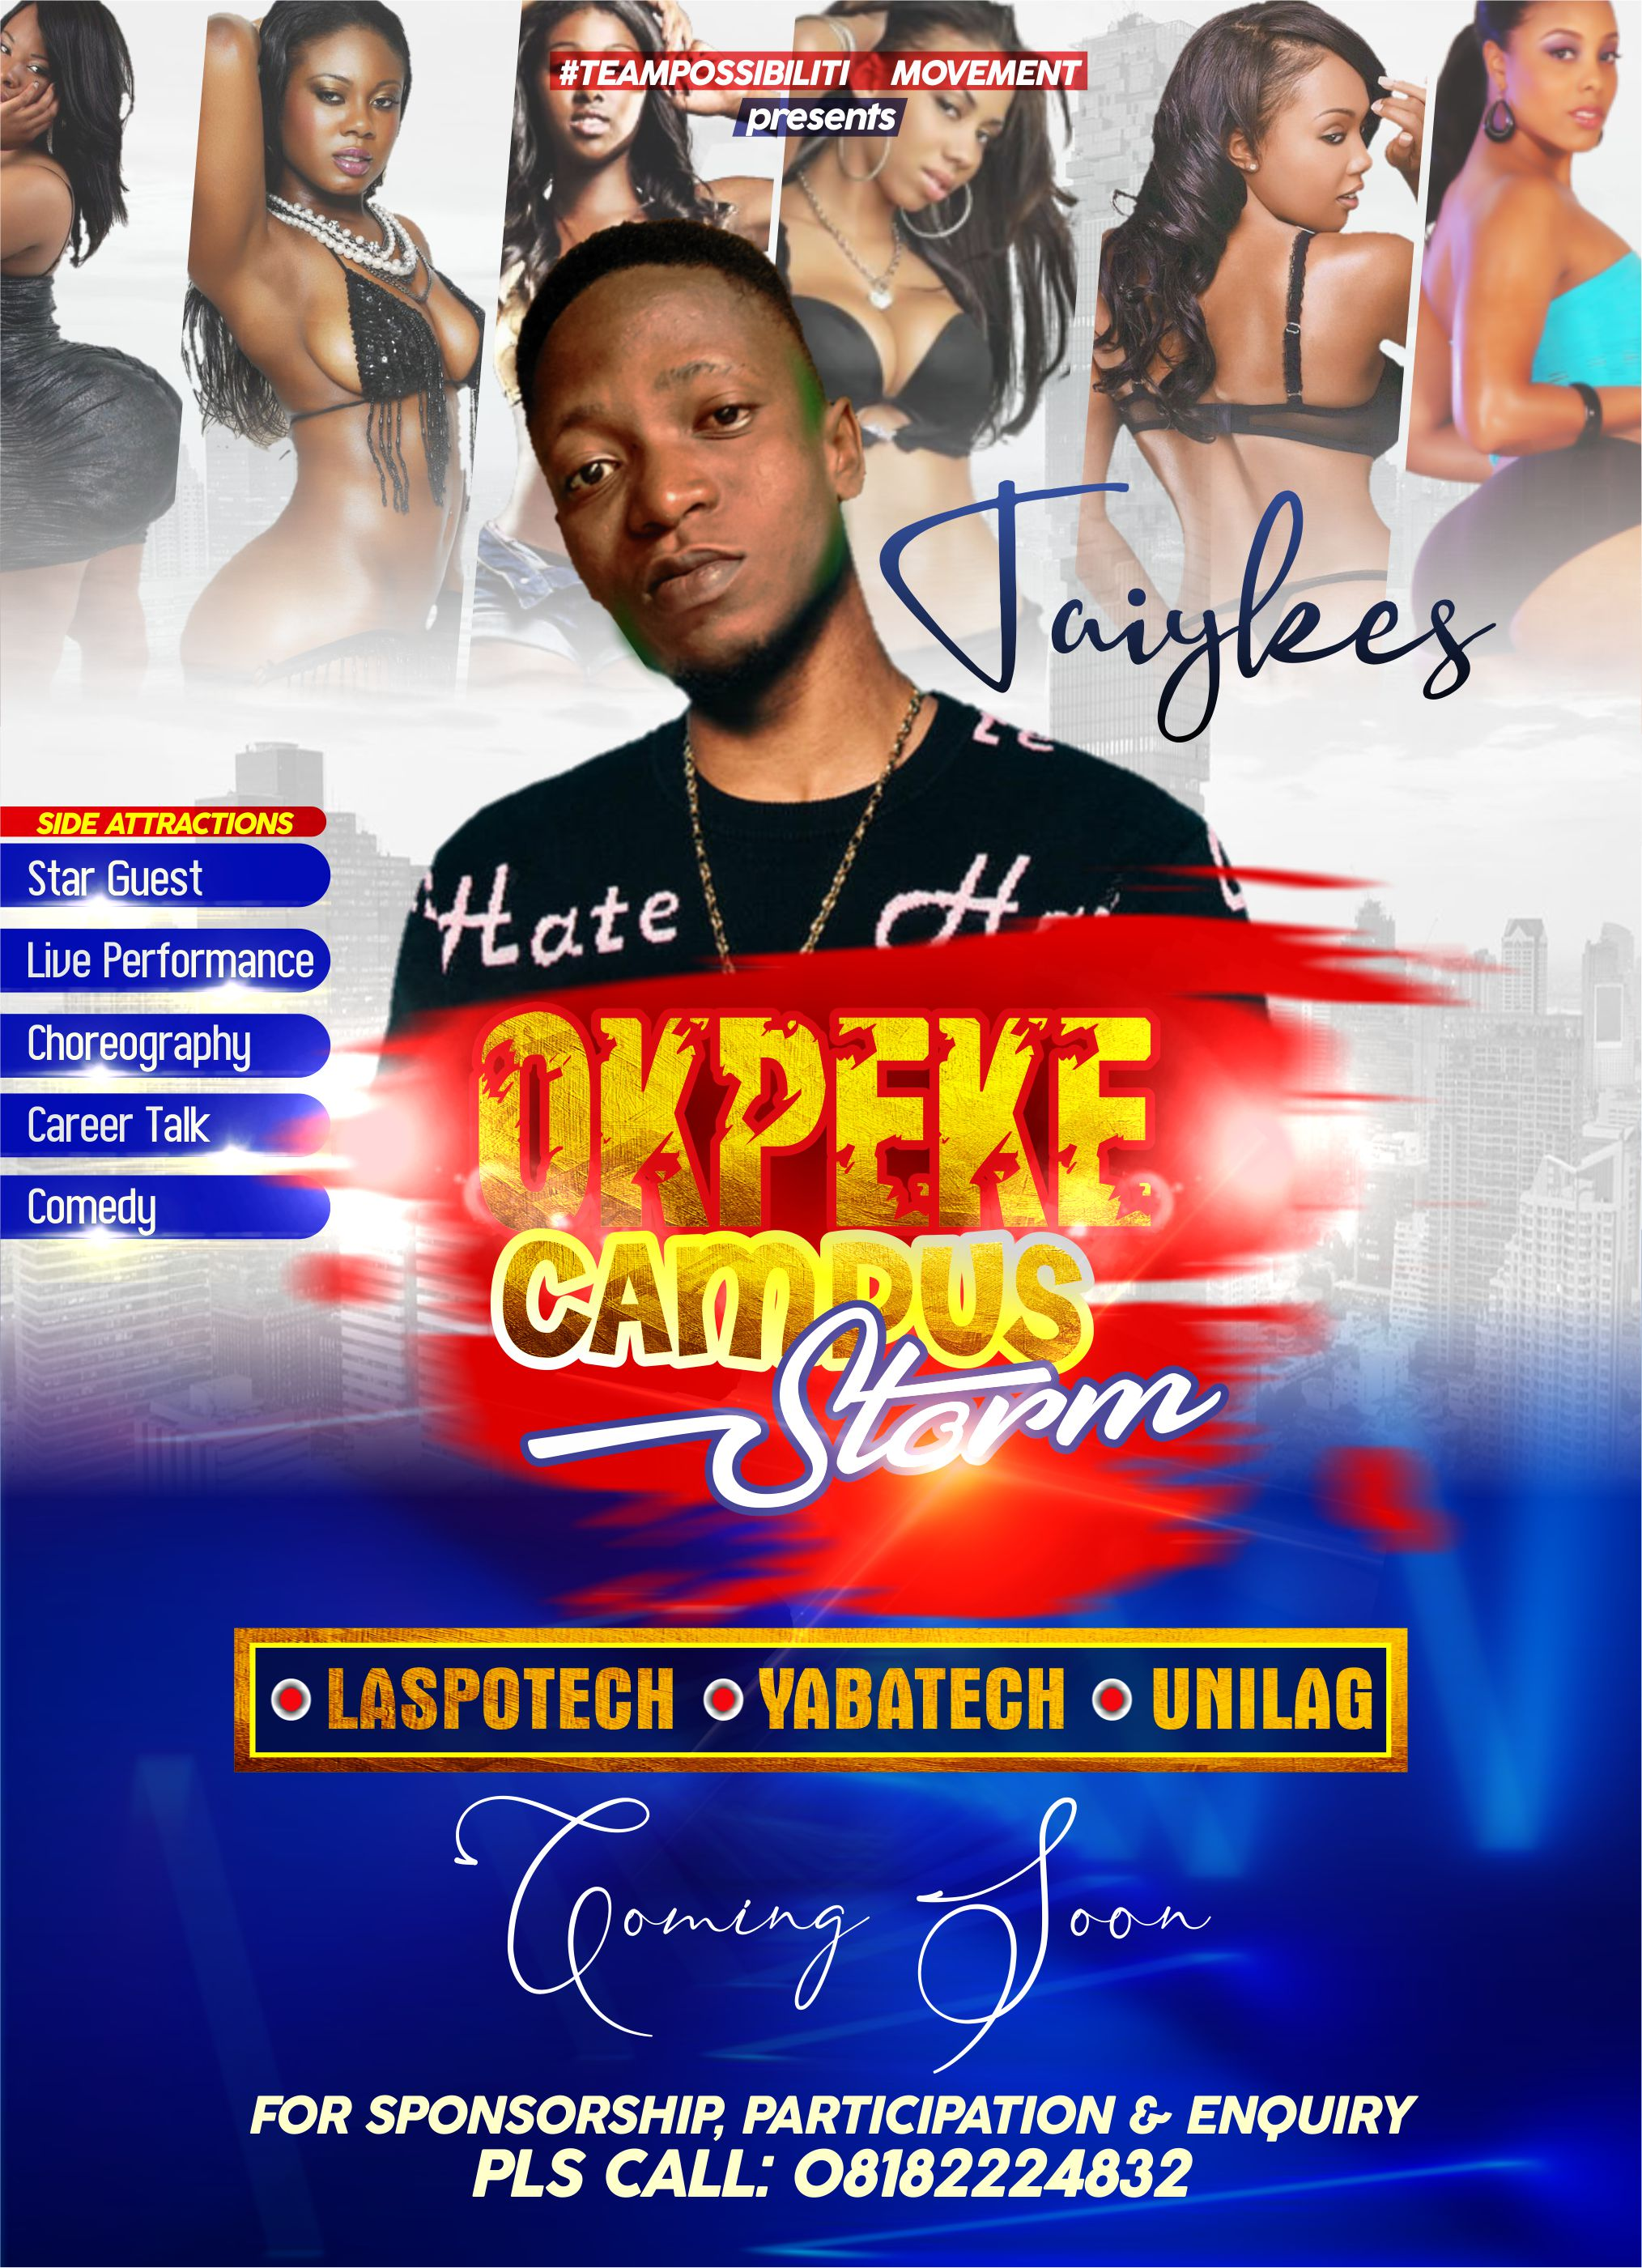 Okpeke Campus Storm Post free event in Nigeria using tickethub.ng, buy and sell tickets to event